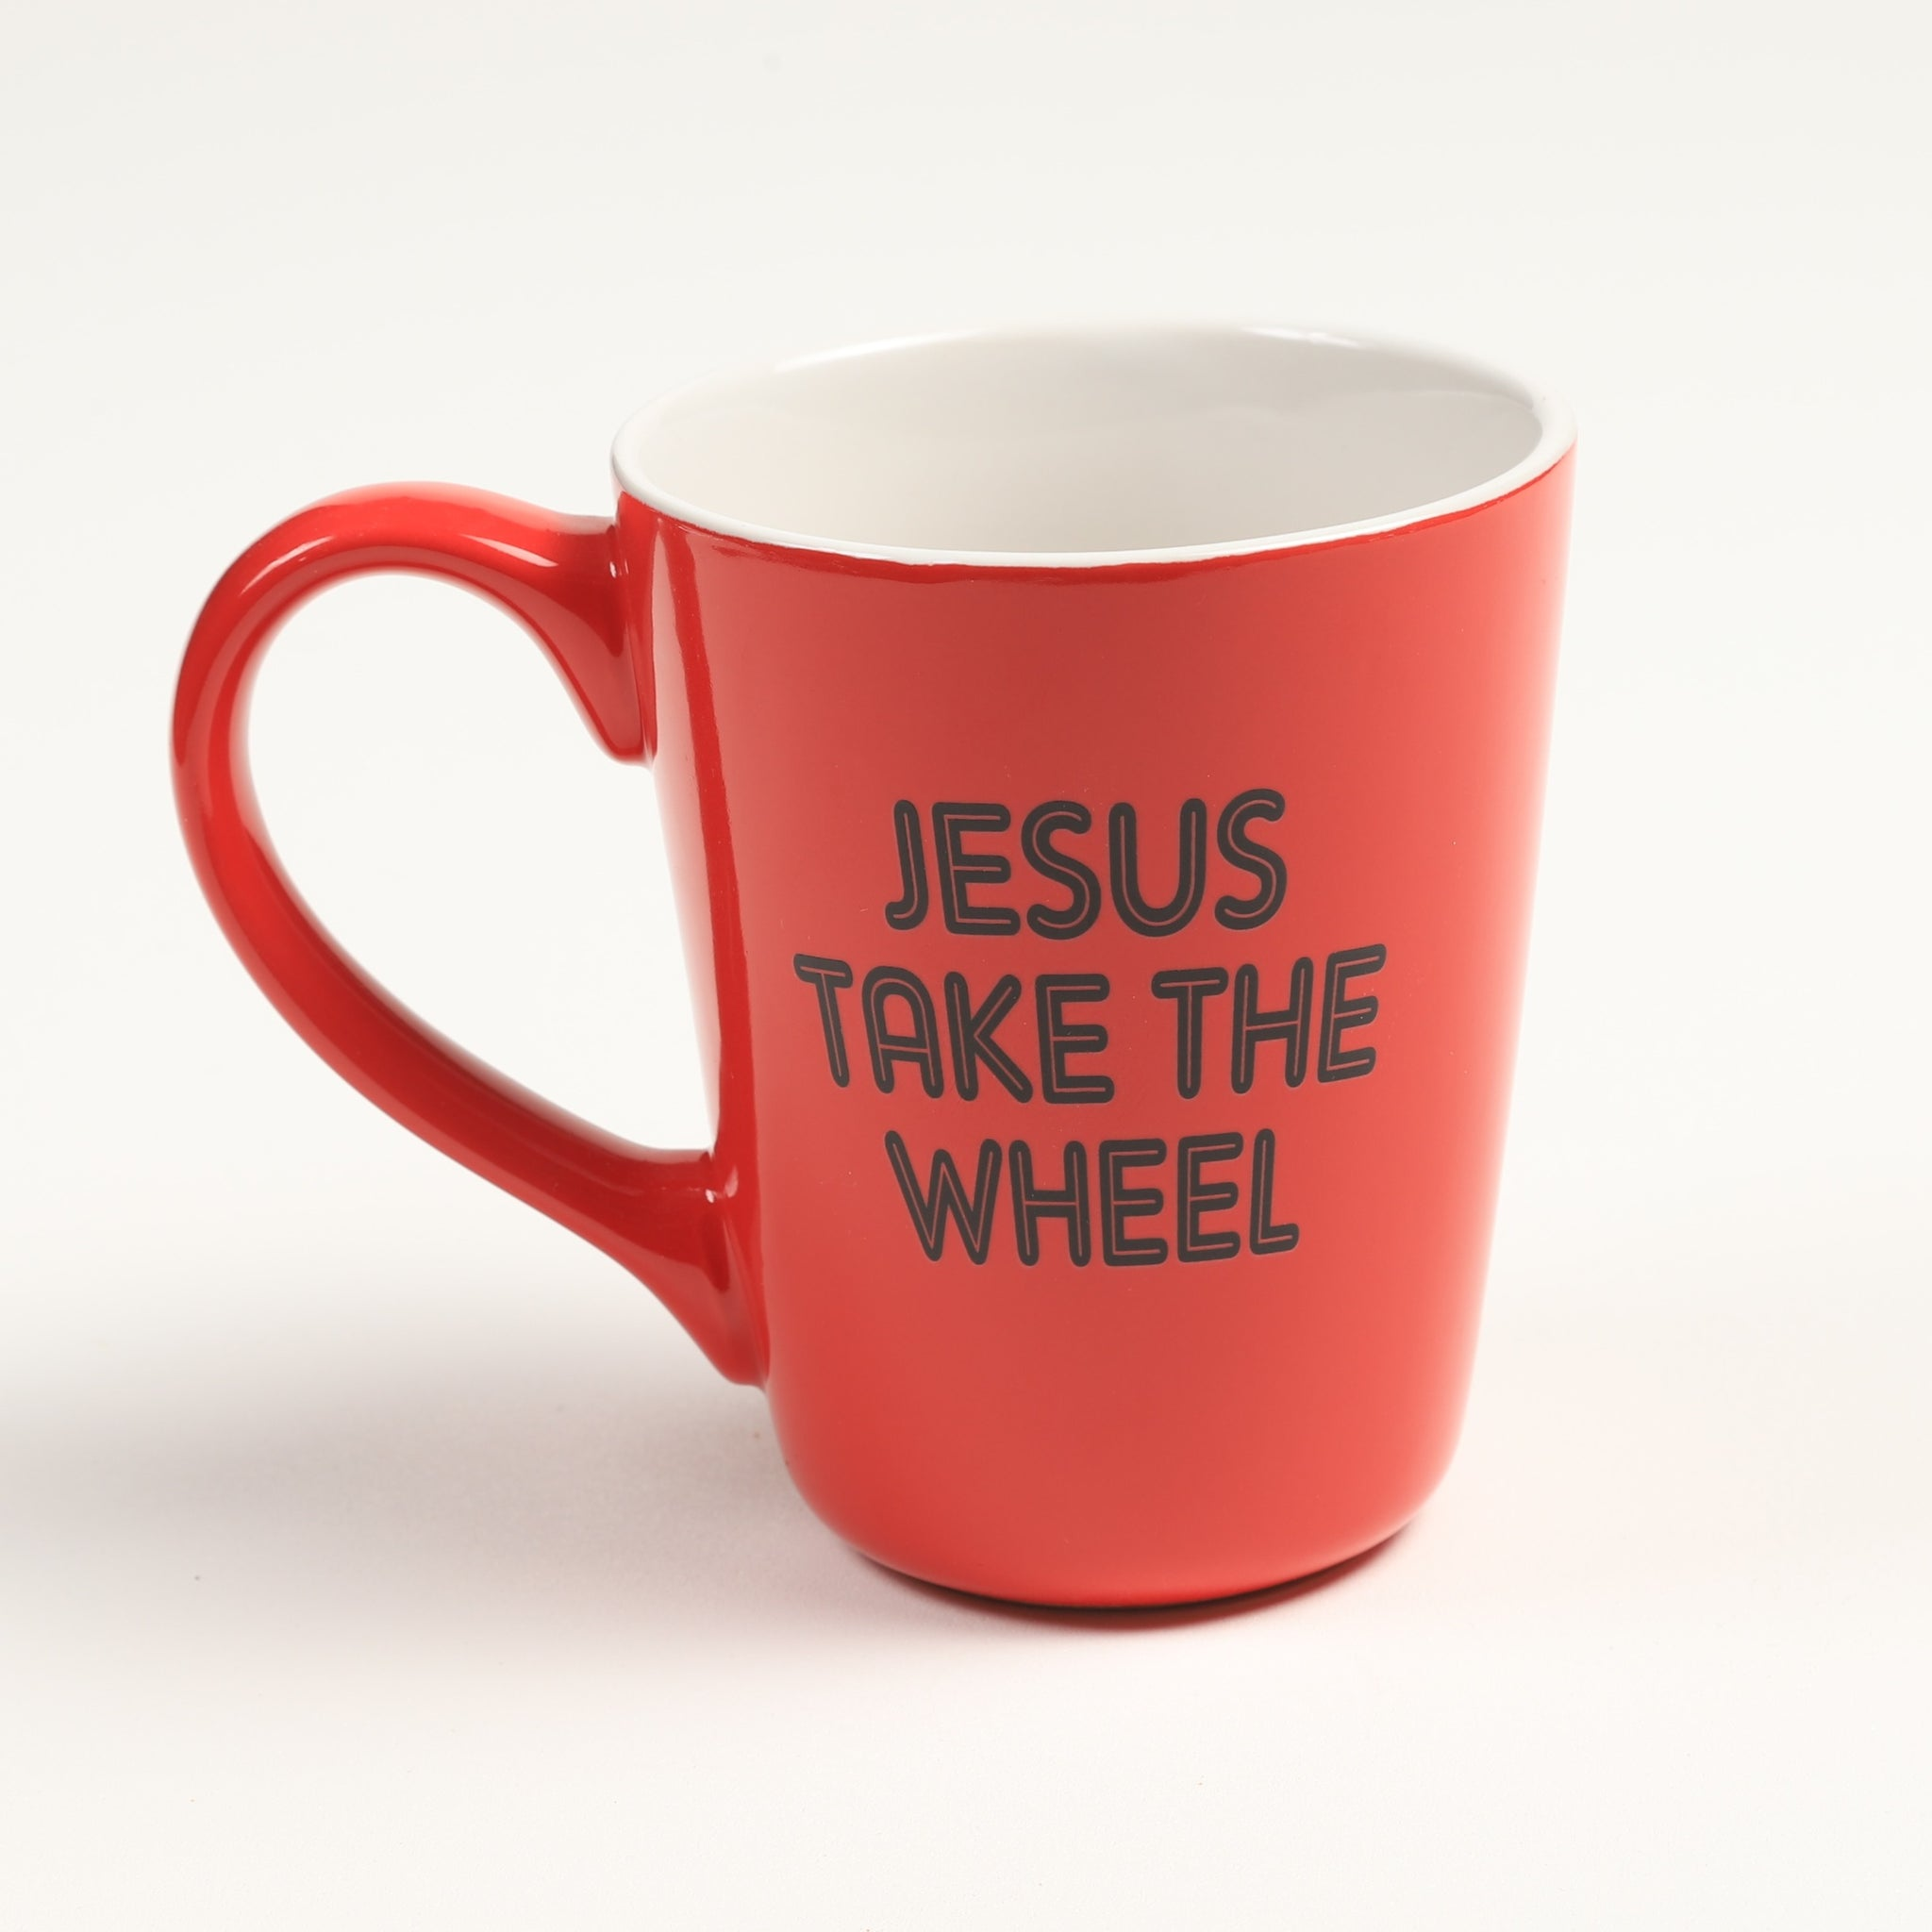 Jesus Take the Wheel Mug